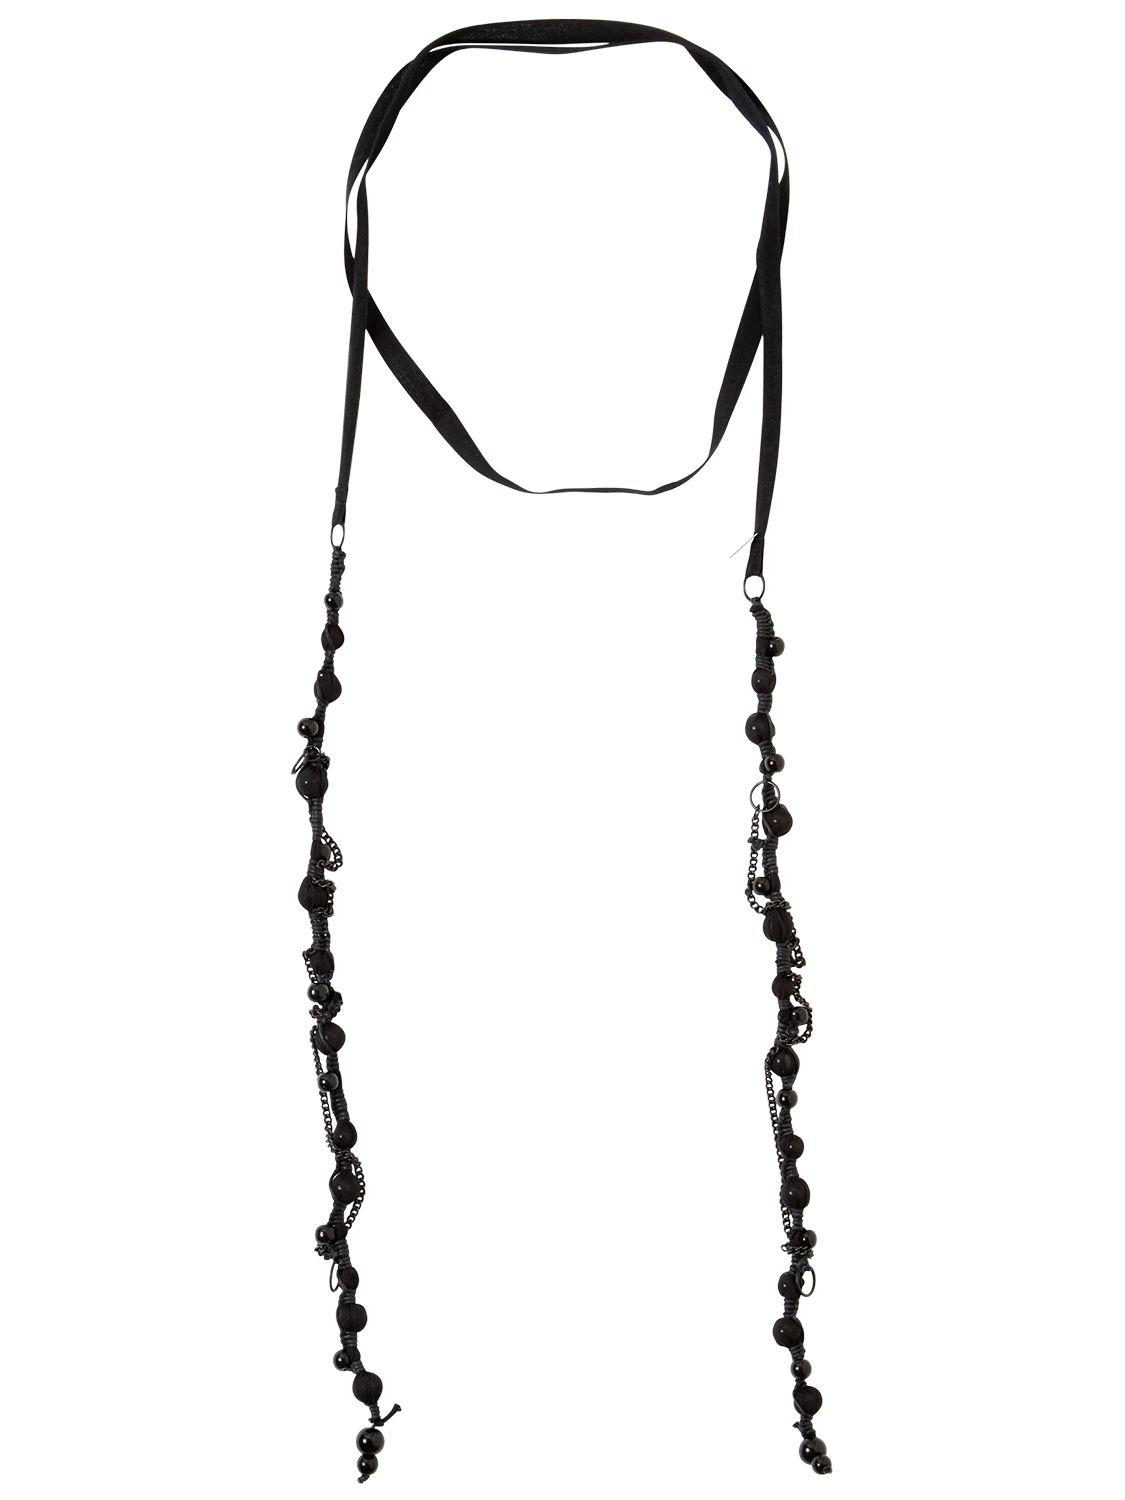 Ann Demeulemeester covered bow necklace - Black ZjMDbdS